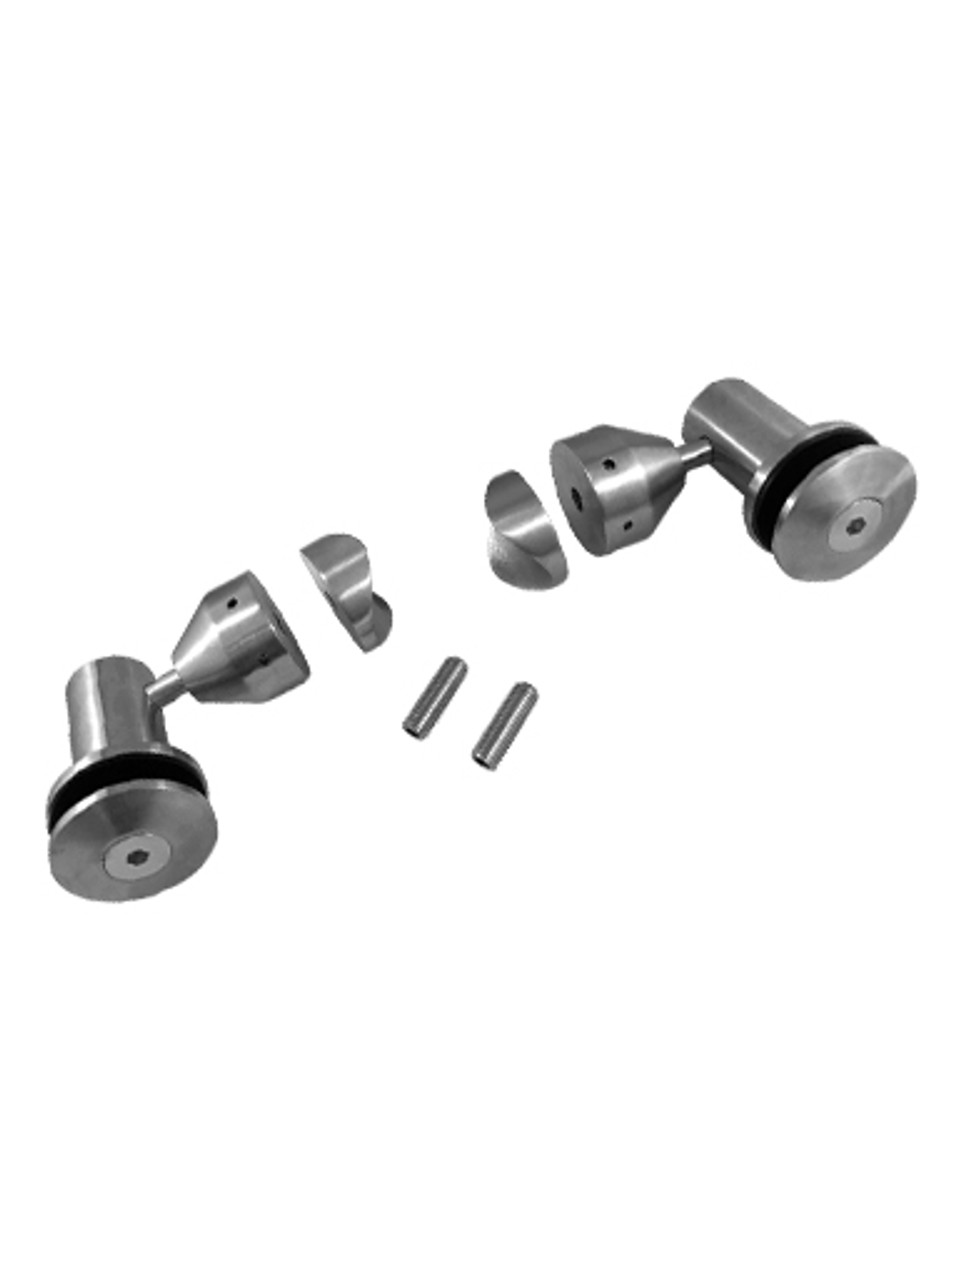 WB6RHD50LBS Double Arm Glass fitting Set in Brushed Finish